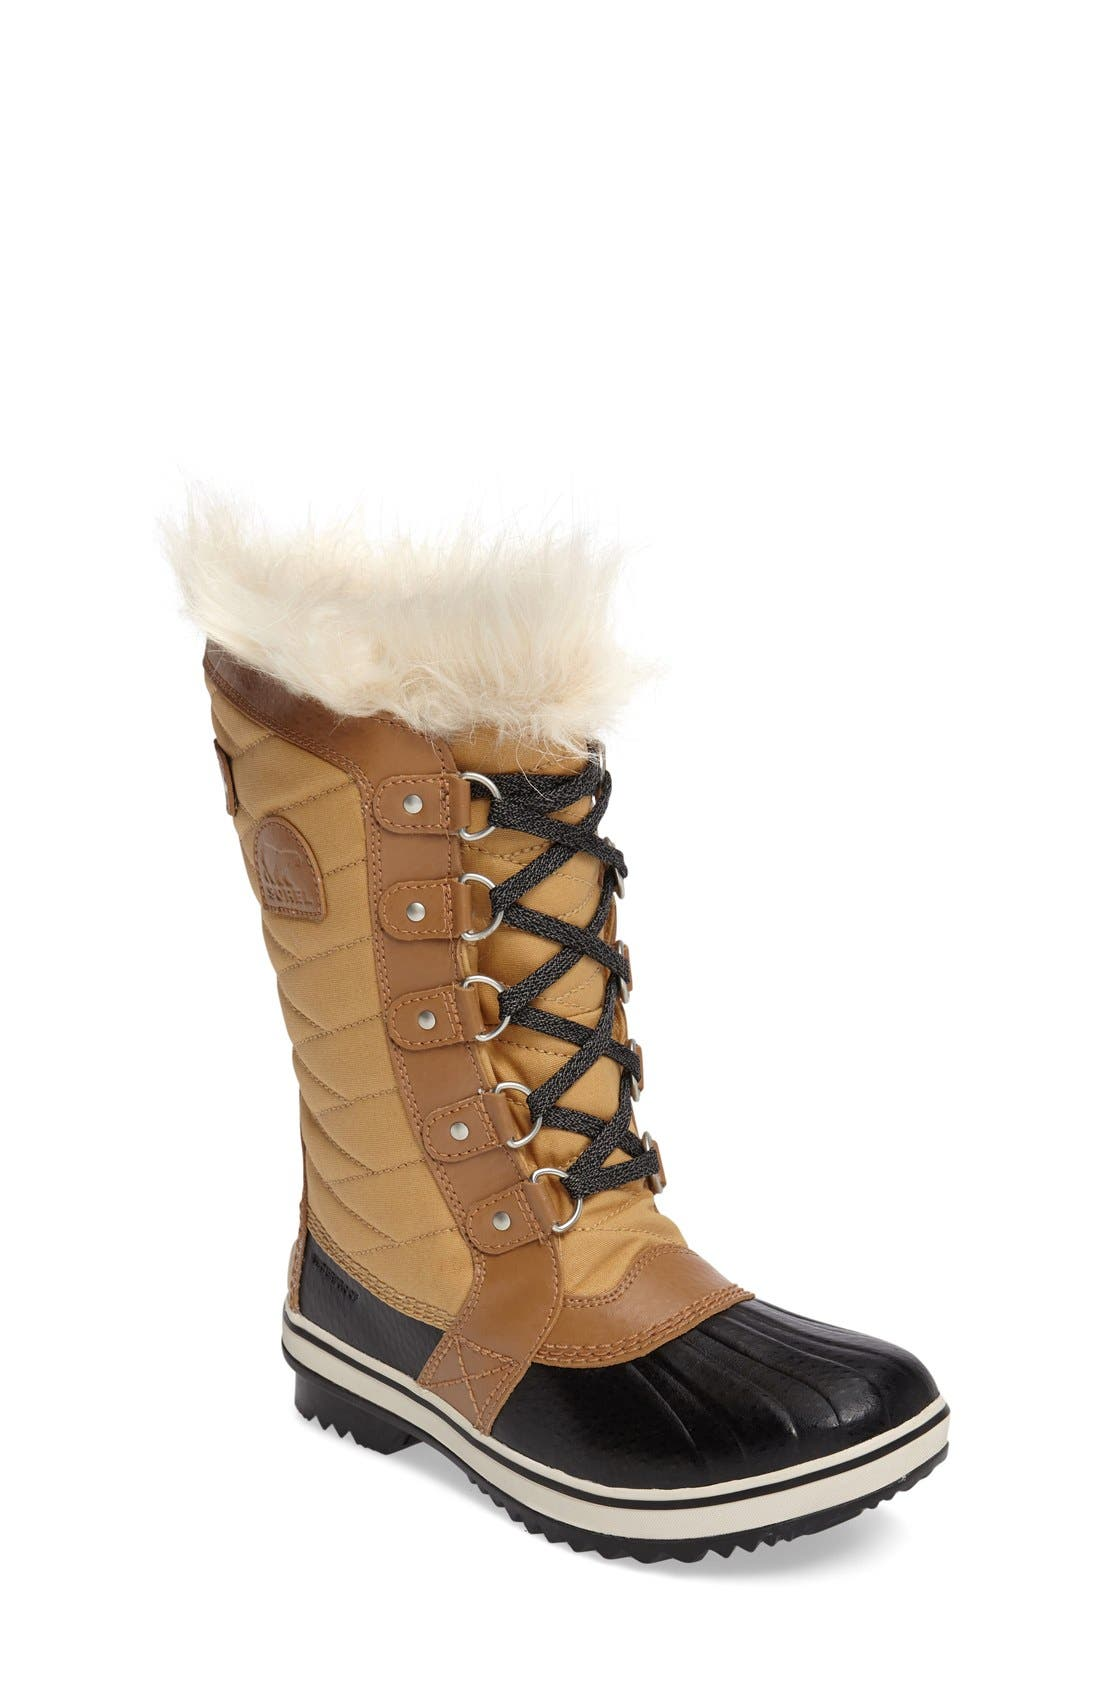 Tofino II Faux Fur Lined Waterproof Boot,                             Main thumbnail 1, color,                             CURRY/ ELK